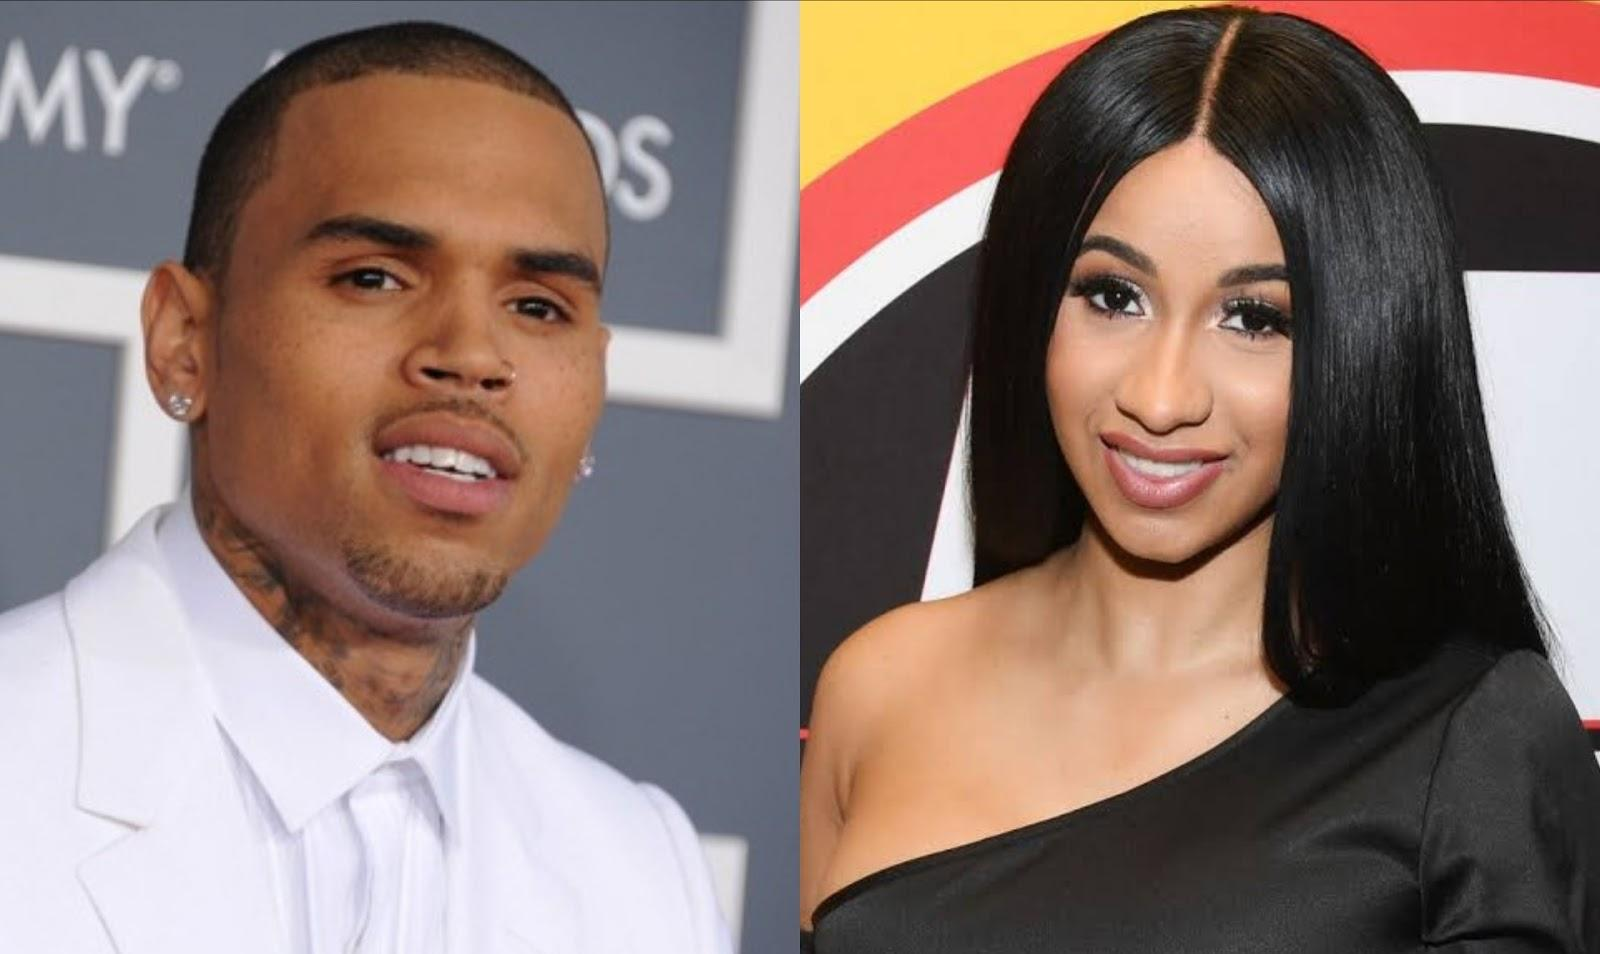 Chris Brown Drags Cardi B Into His Social Media Feud With Offset - 'Ima Send Ya Girl Flowers'